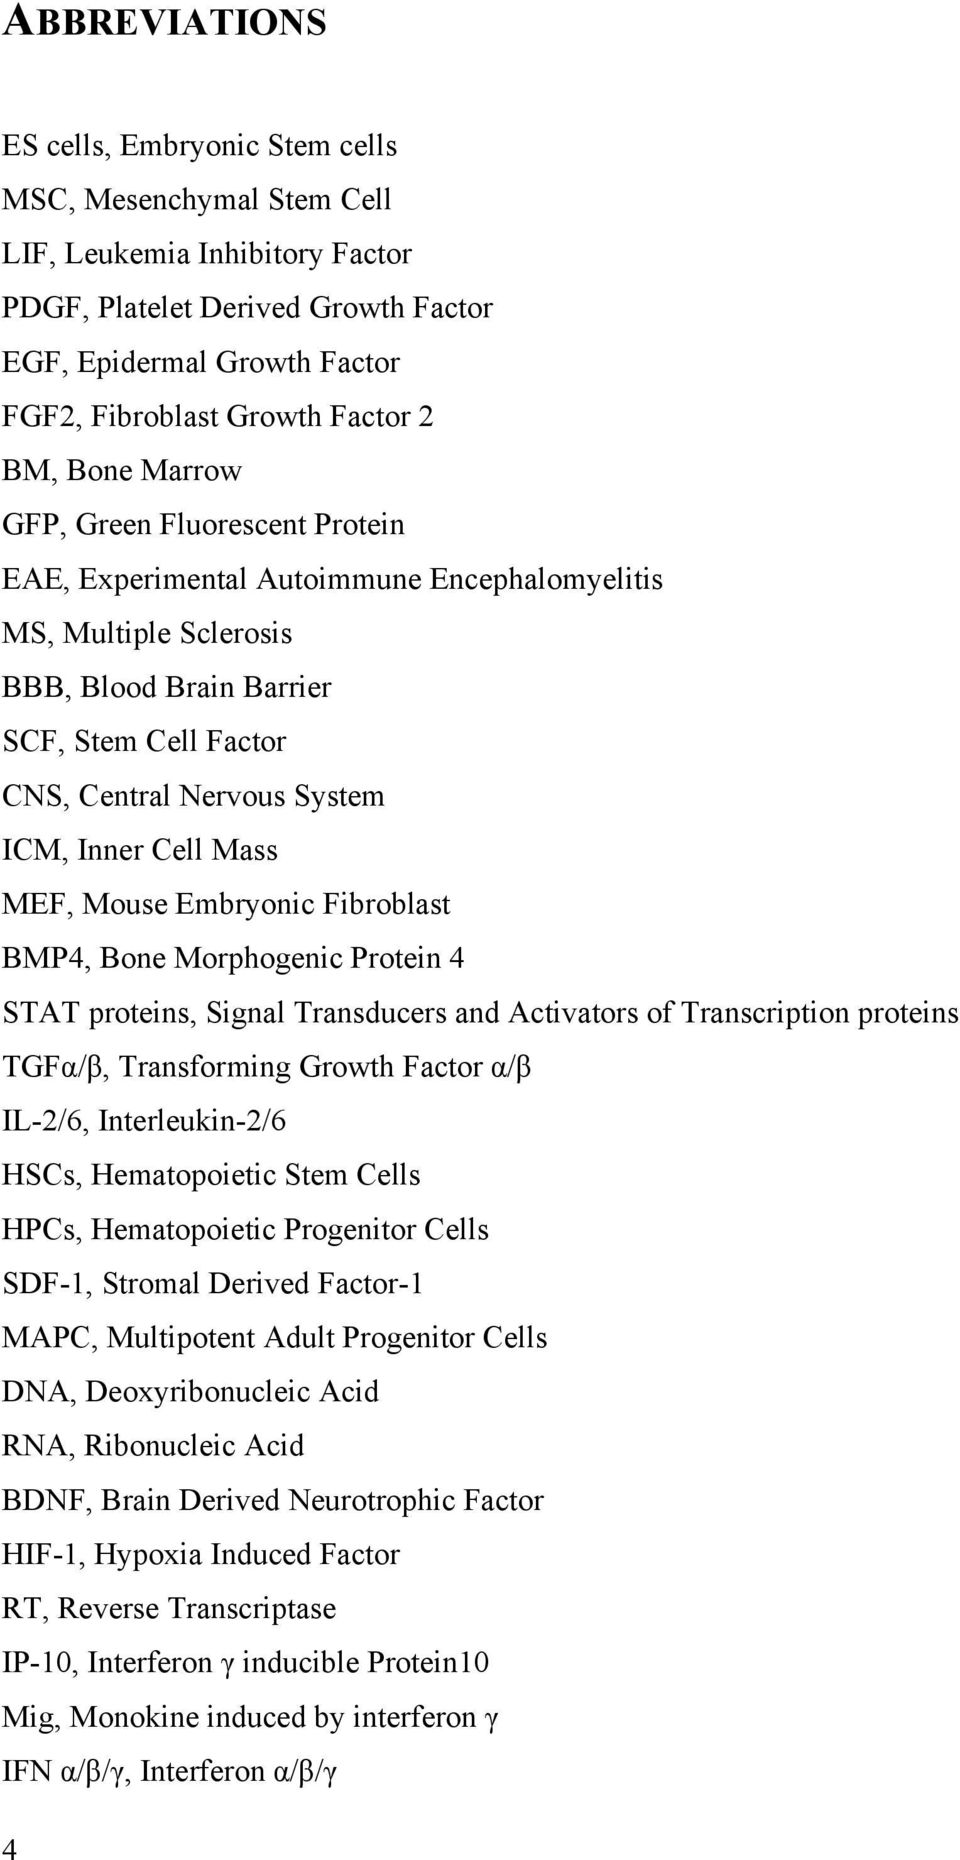 System ICM, Inner Cell Mass MEF, Mouse Embryonic Fibroblast BMP4, Bone Morphogenic Protein 4 STAT proteins, Signal Transducers and Activators of Transcription proteins TGFα/β, Transforming Growth